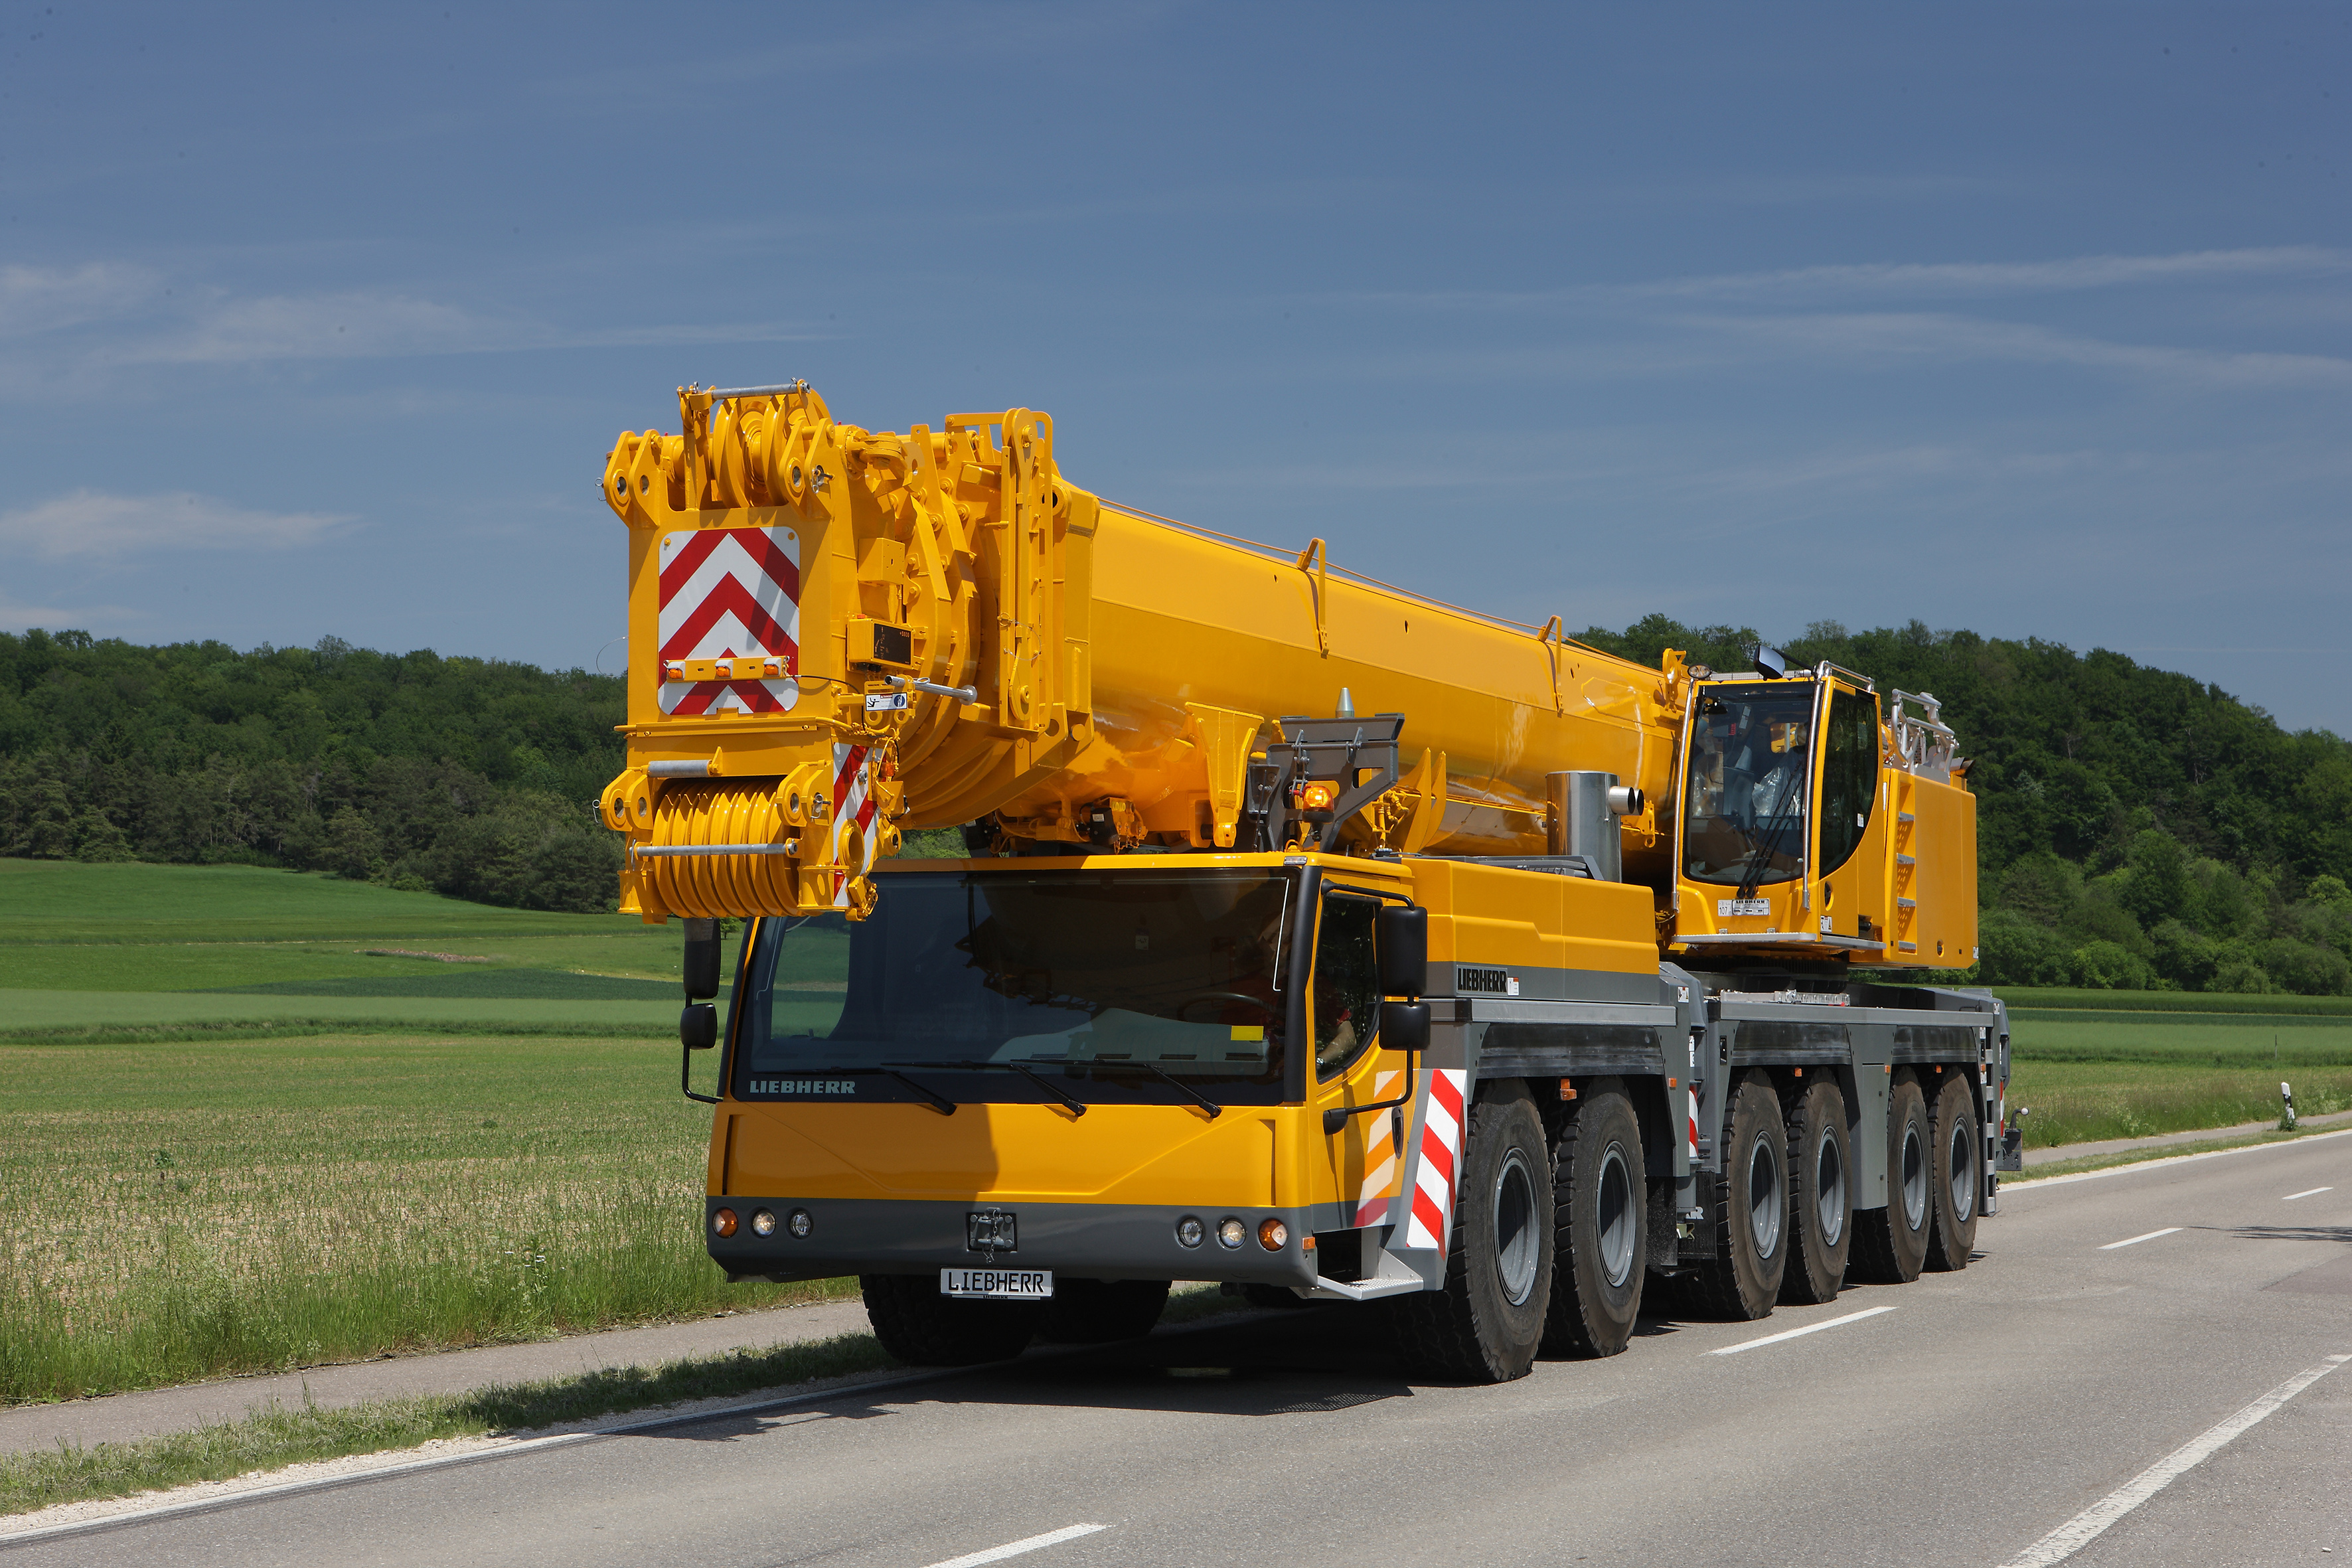 listings construction equipment for sale category cranes